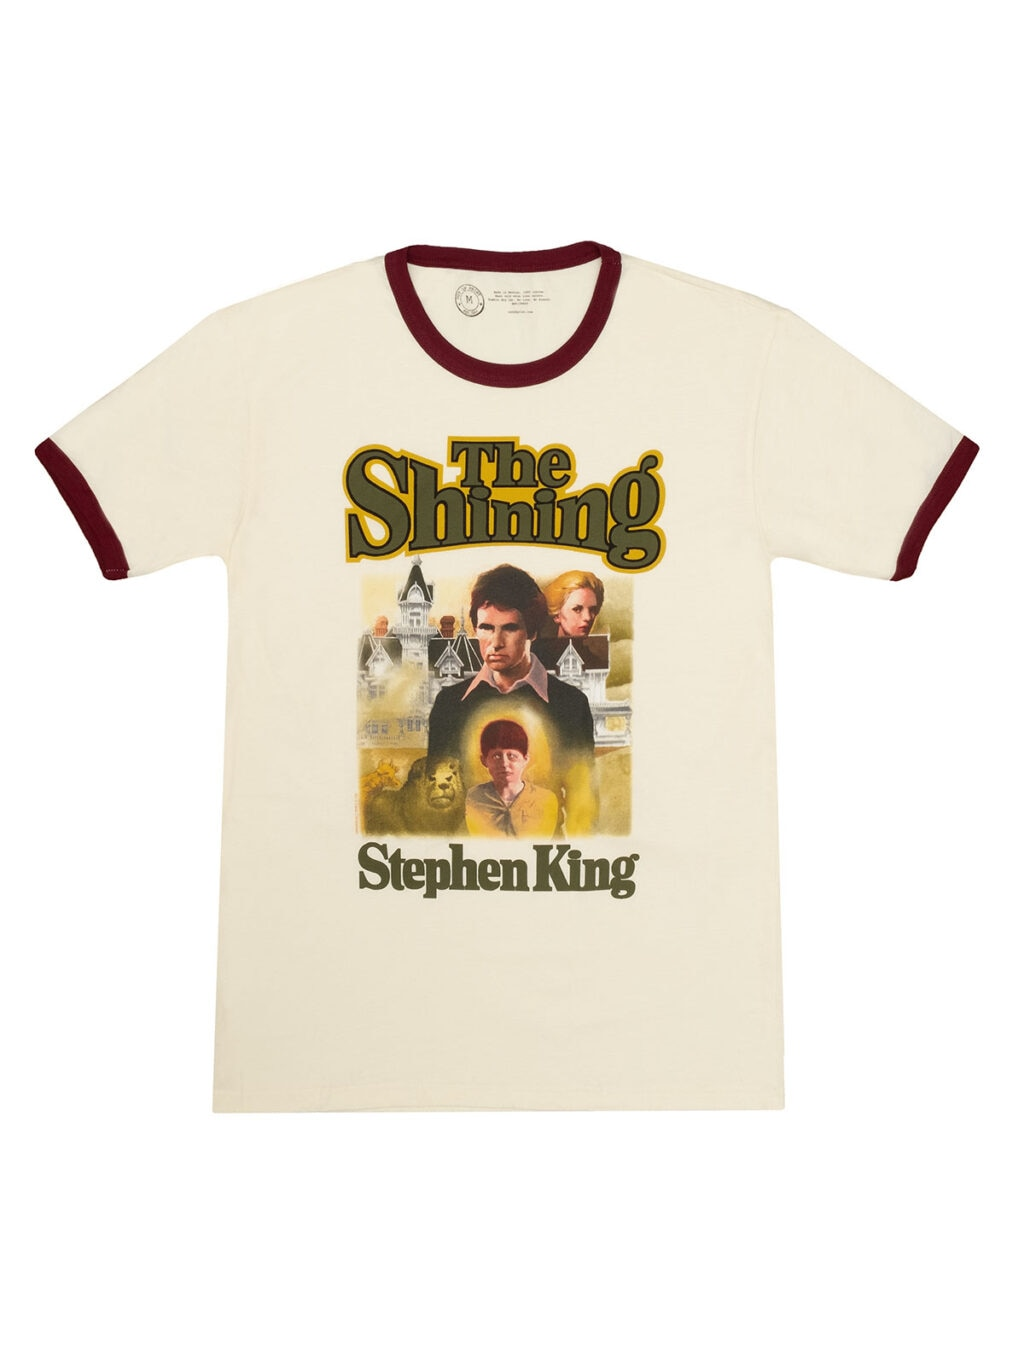 Unisex Ringer Stephen King The Shining 1024x1365 - Out of Print's STEPHEN KING Collection Sports Classic Cover Art!